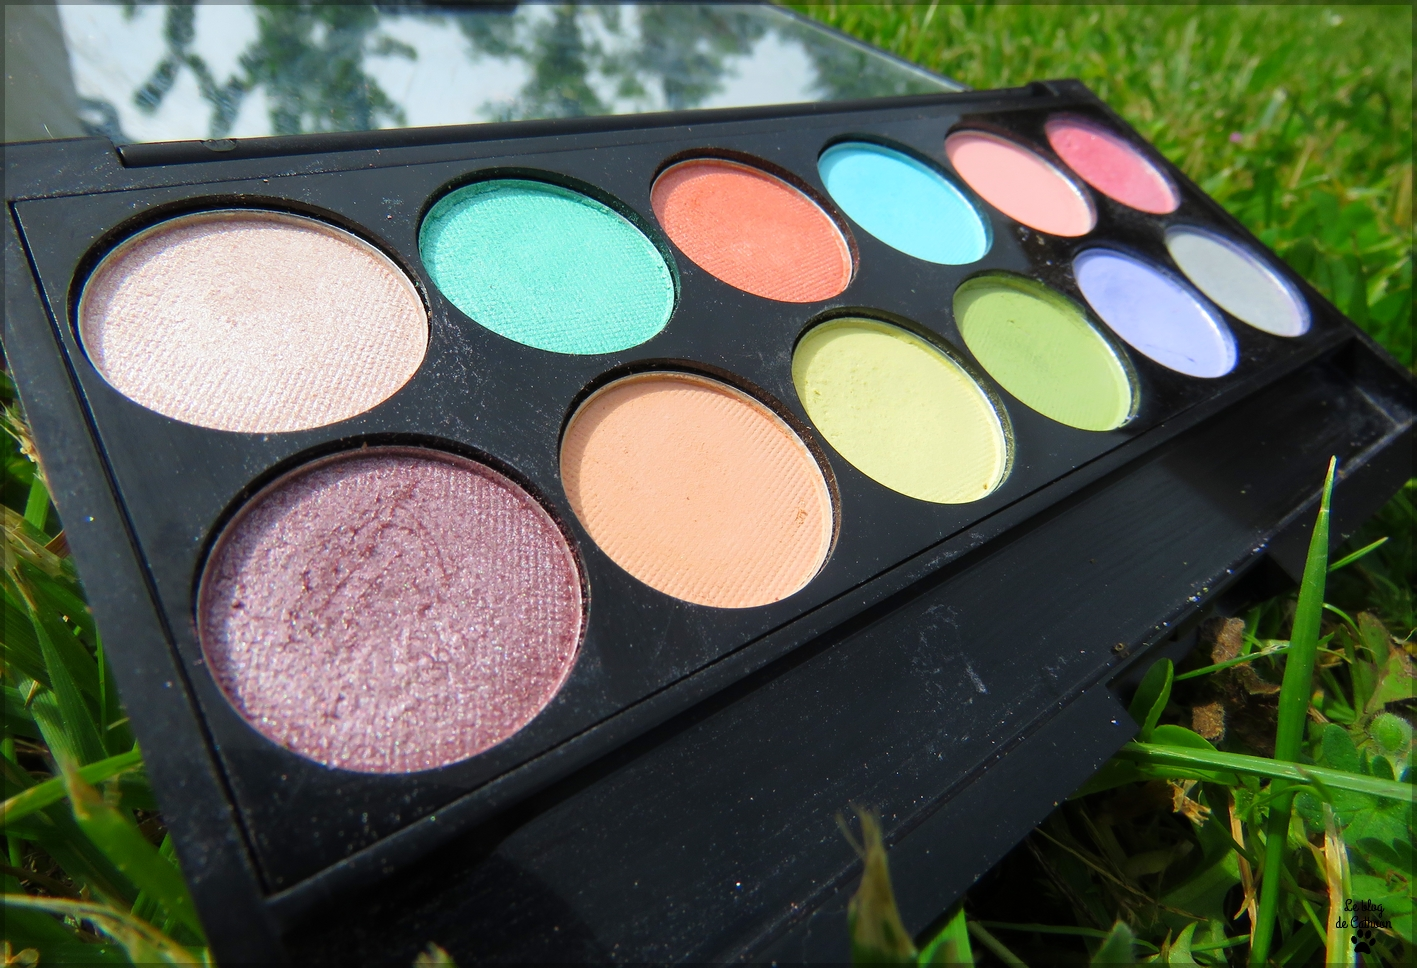 Palette Whimsical Wonderland - All The Fun Of The Fair - Sleek